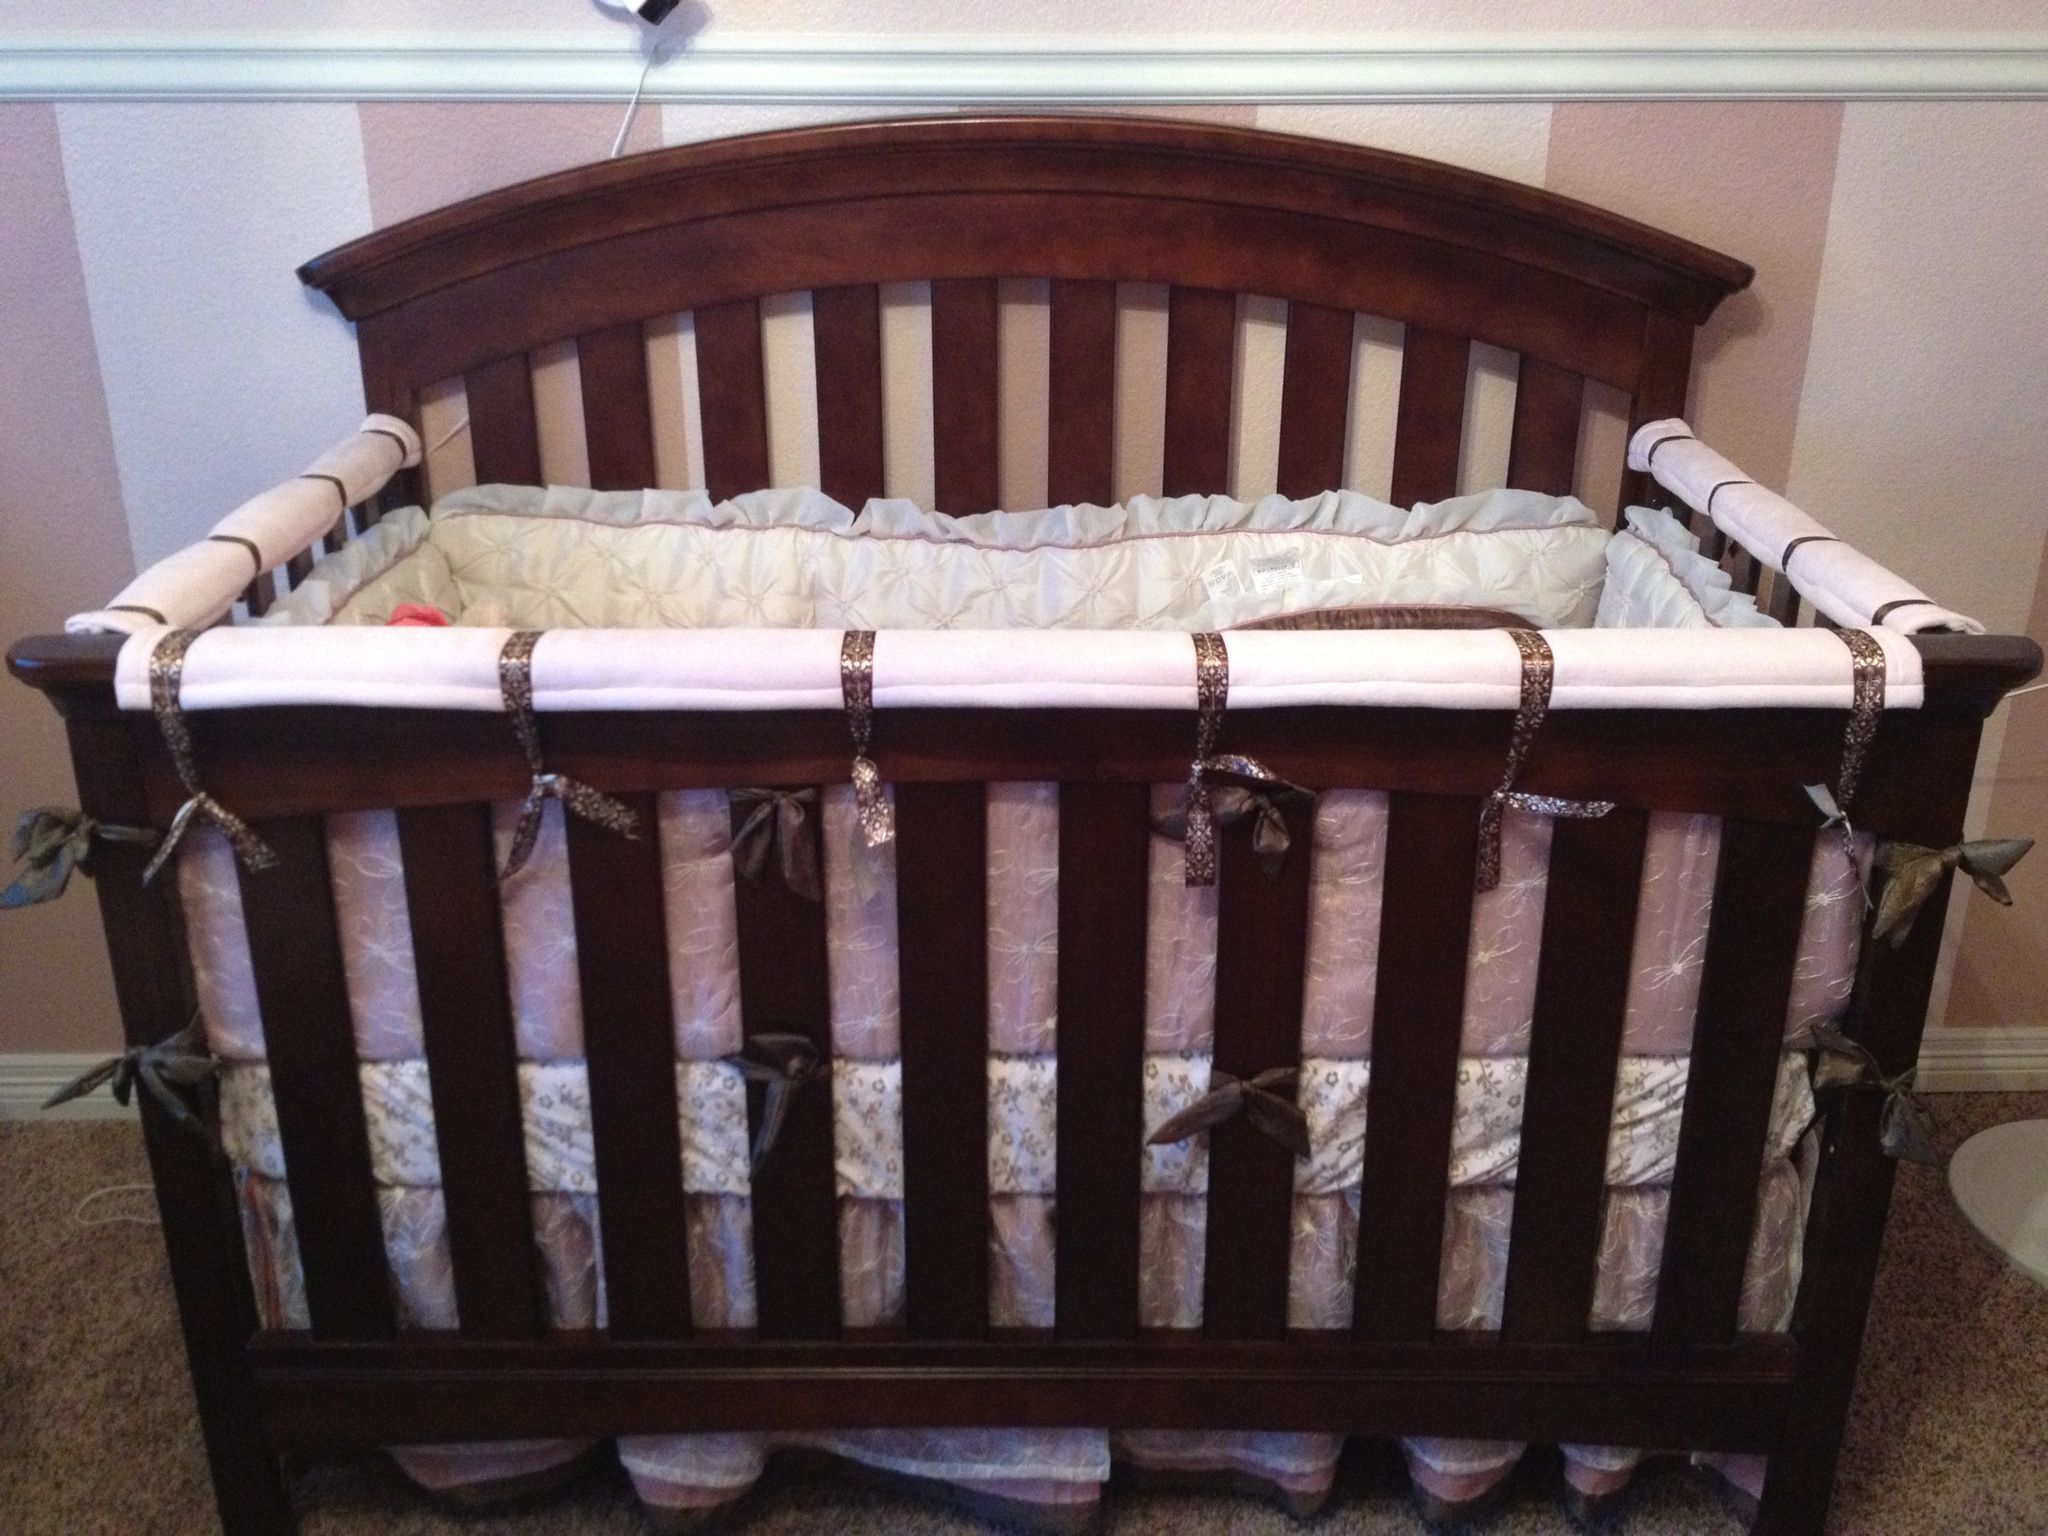 Crib rail covers. Use thick fabric or add quilt battling